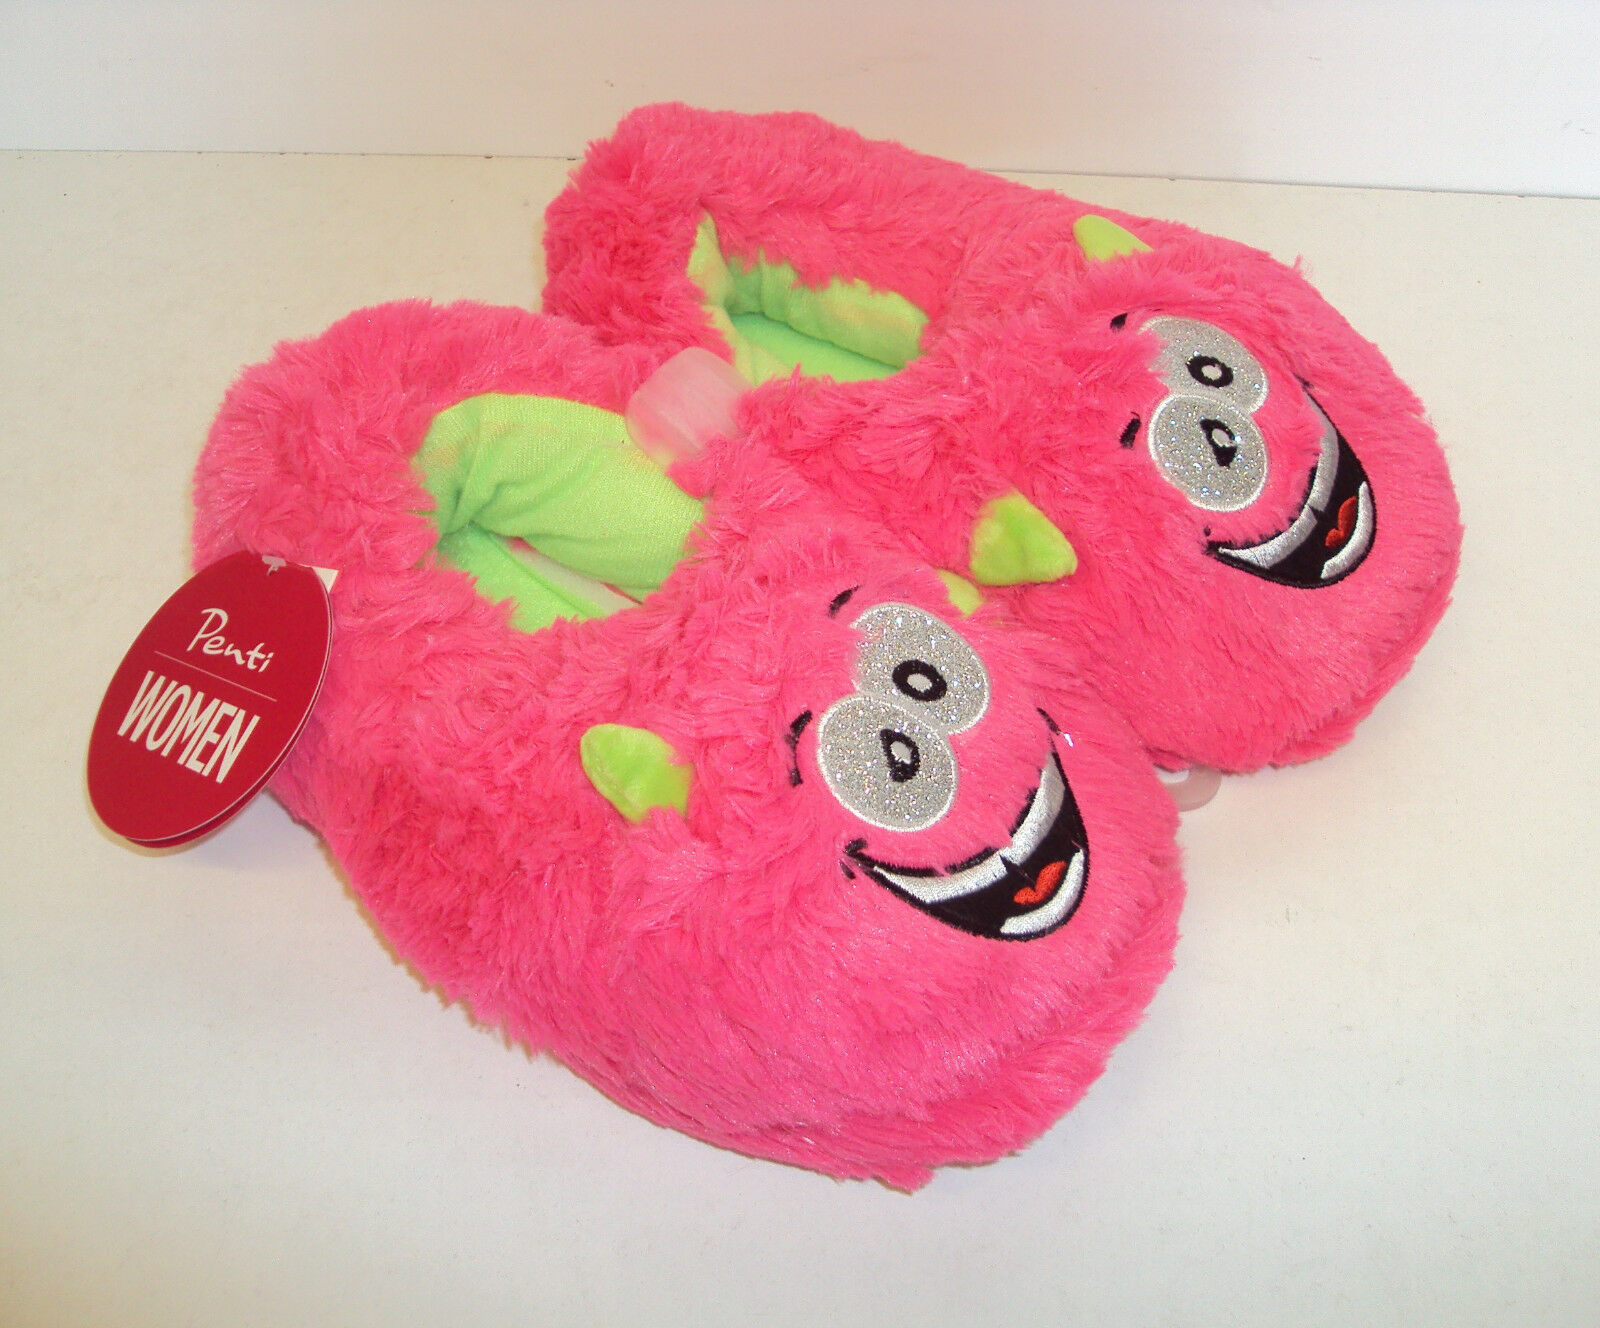 Ladies Slippers Girls Novelty Cosy Gift Slippers Ladies Monster Pink New Sizes 2-3, 4-5, 6-7 15bbc5